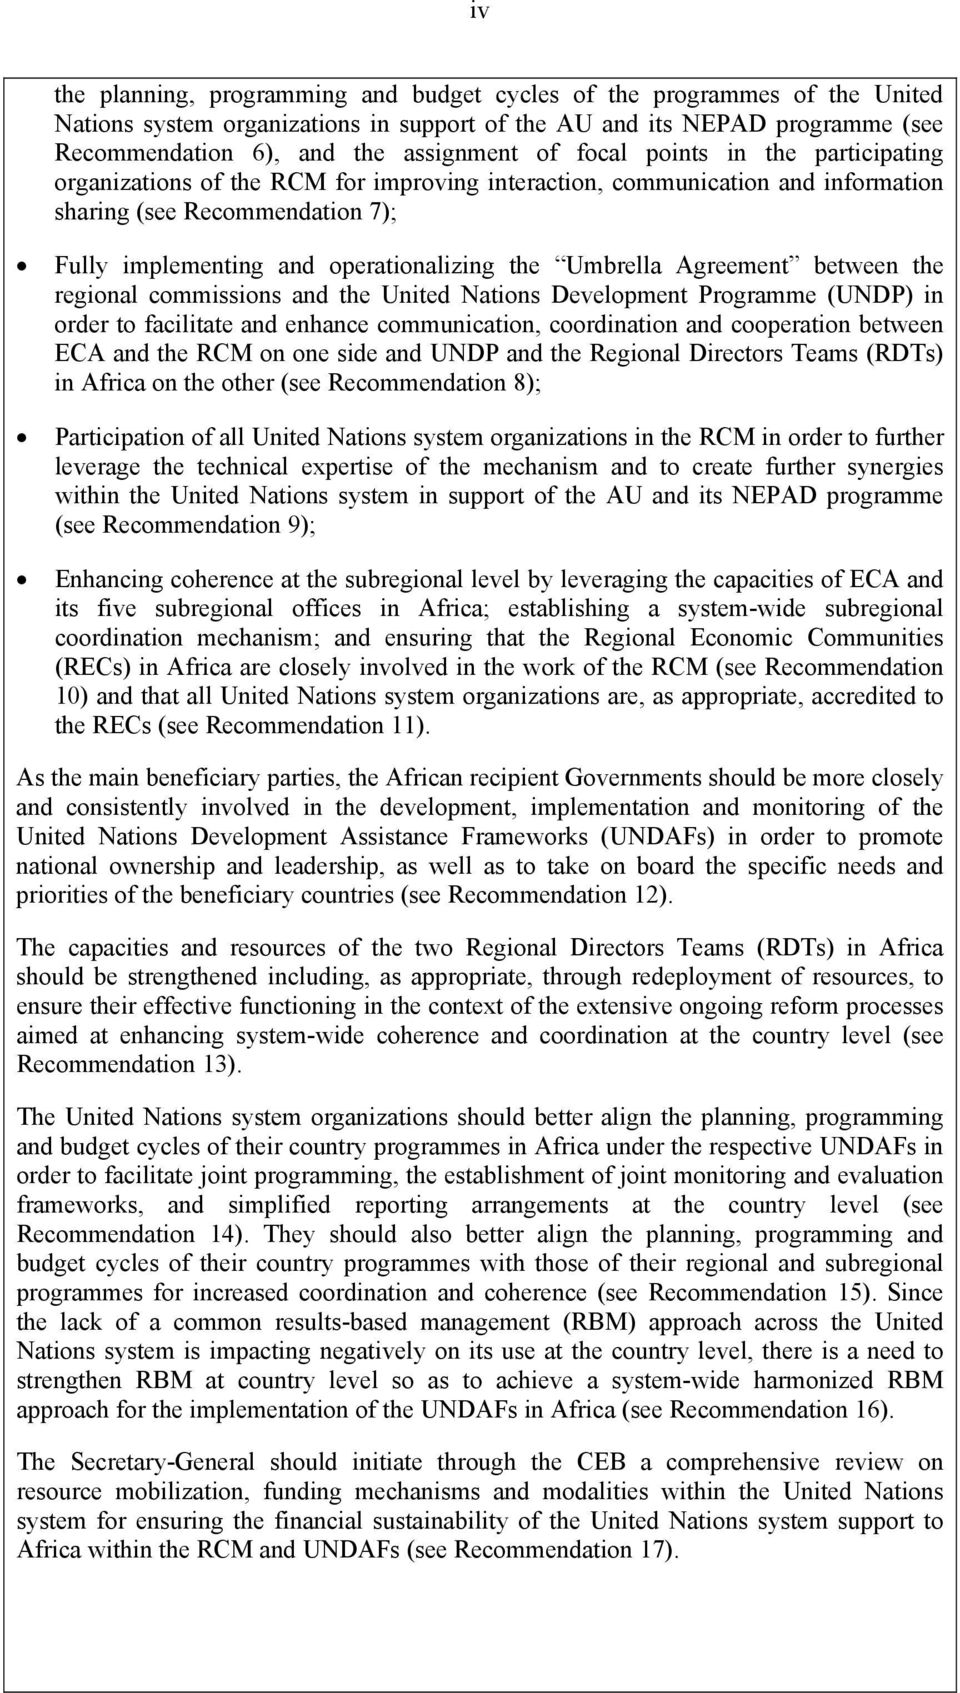 Umbrella Agreement between the regional commissions and the United Nations Development Programme (UNDP) in order to facilitate and enhance communication, coordination and cooperation between ECA and